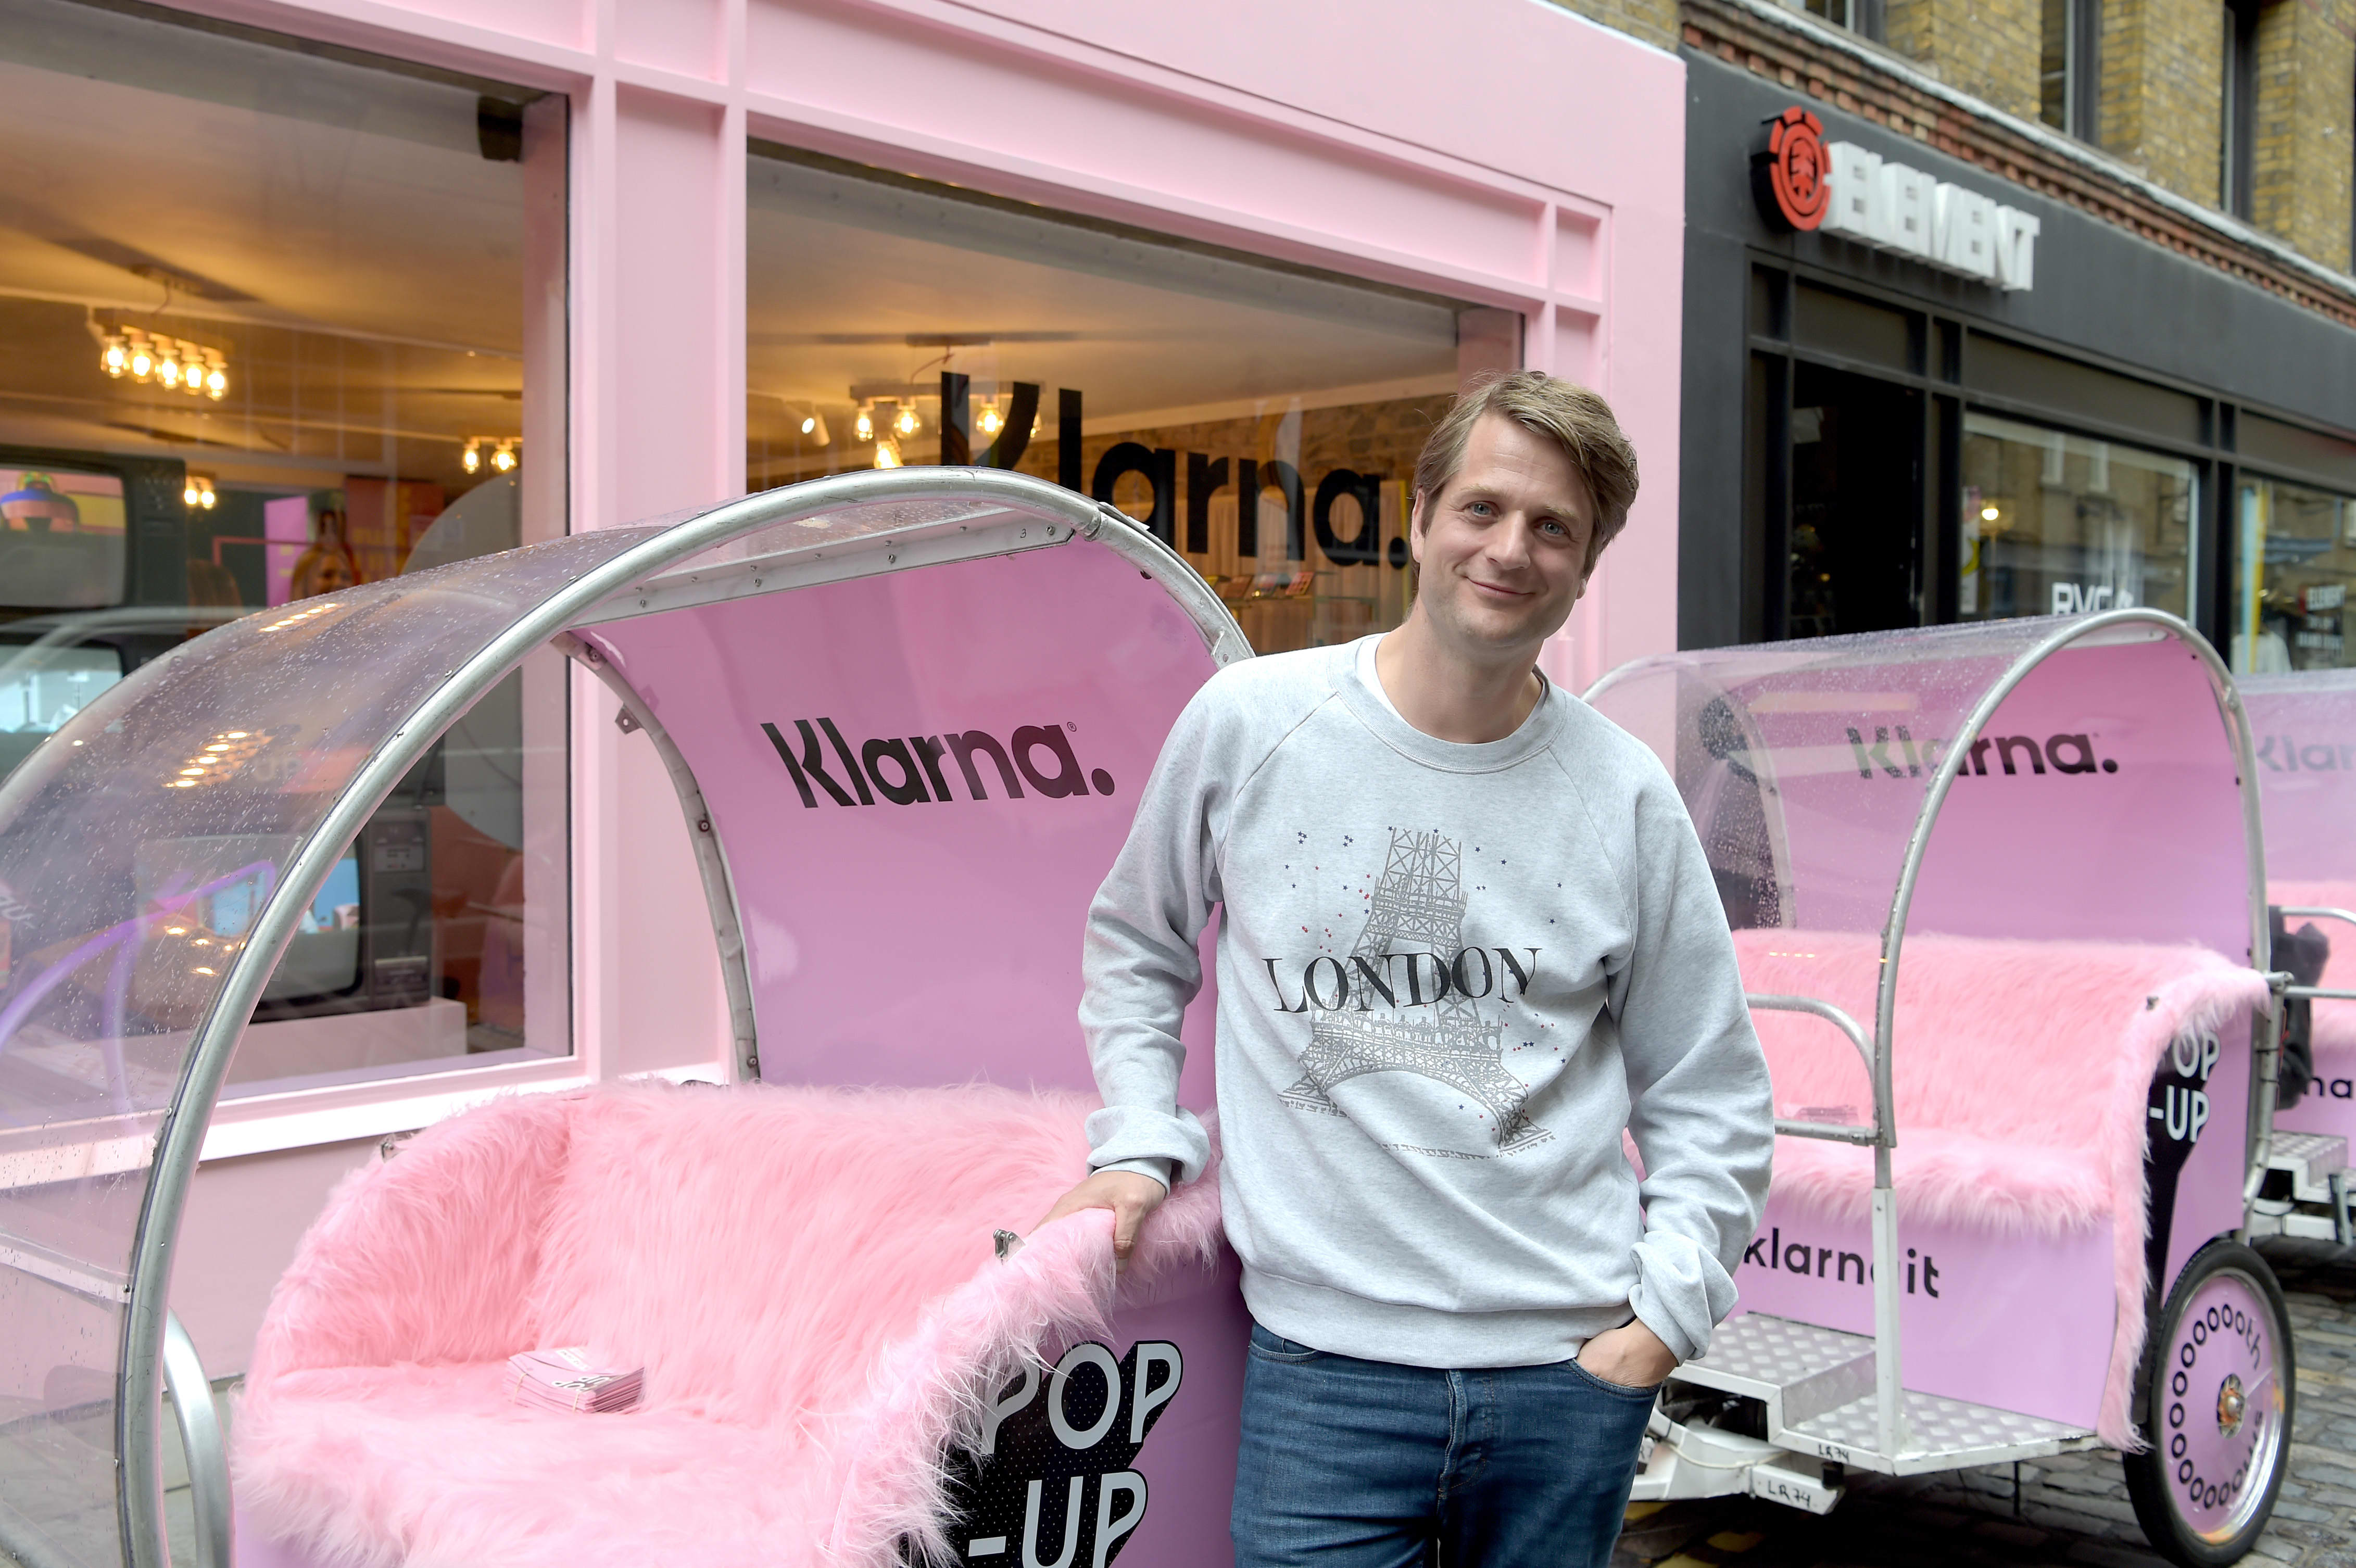 LONDON — Swedish fintech firm Klarna said Thursday that it raised $639 million in a new funding round led by SoftBank, valuing the company at $45.6